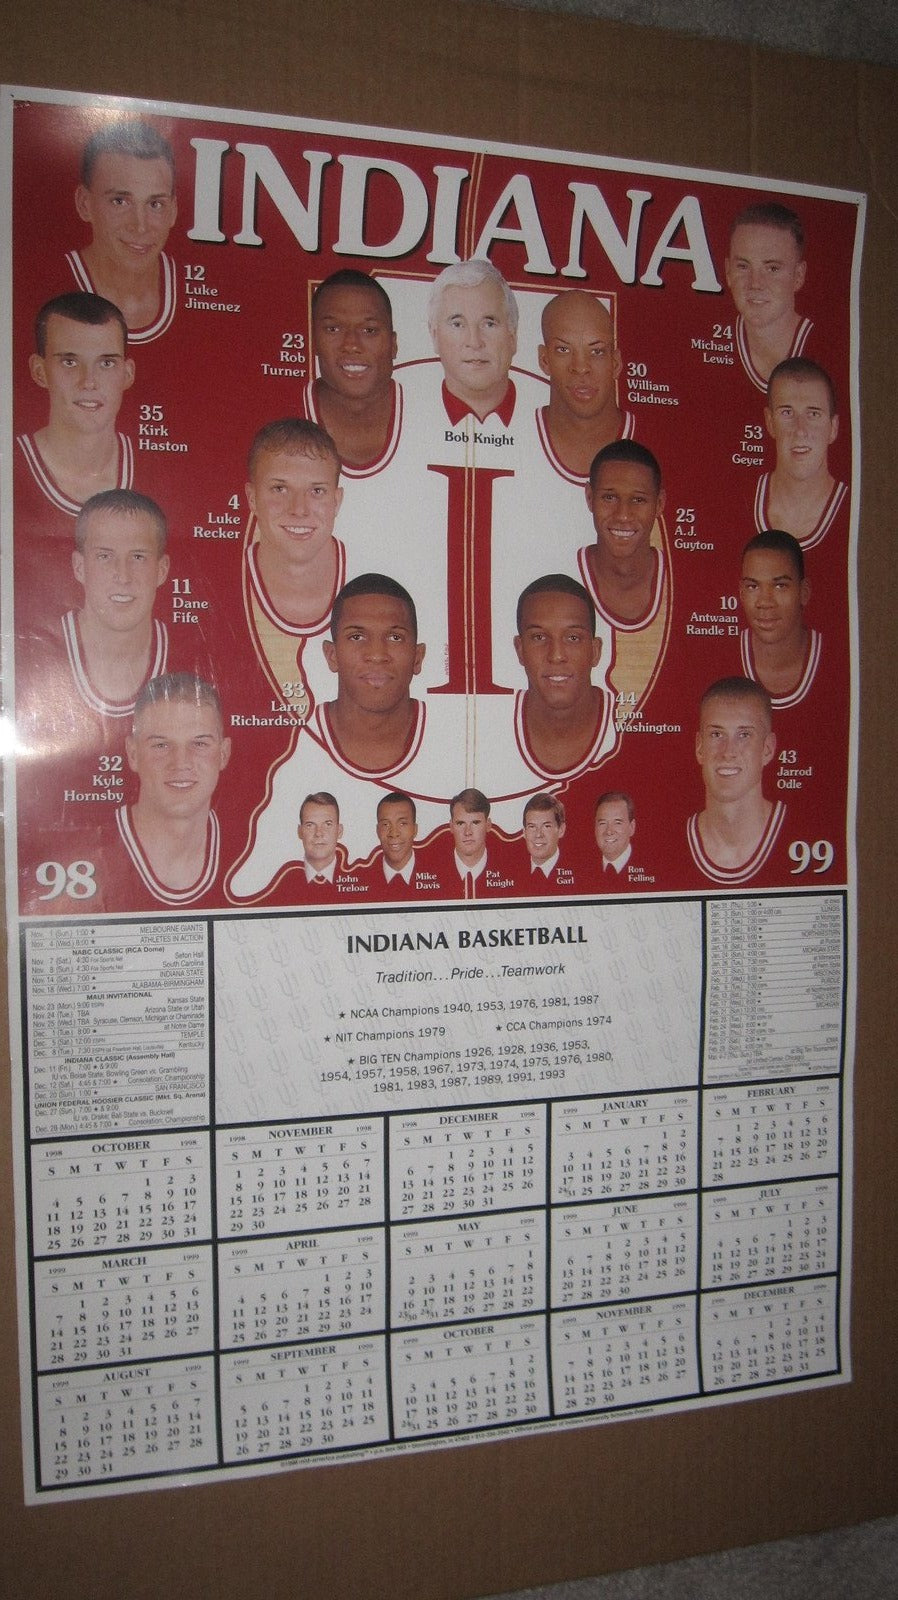 1998-99 Indiana University Basketball Schedule Poster 19x28 - Vintage Indy Sports